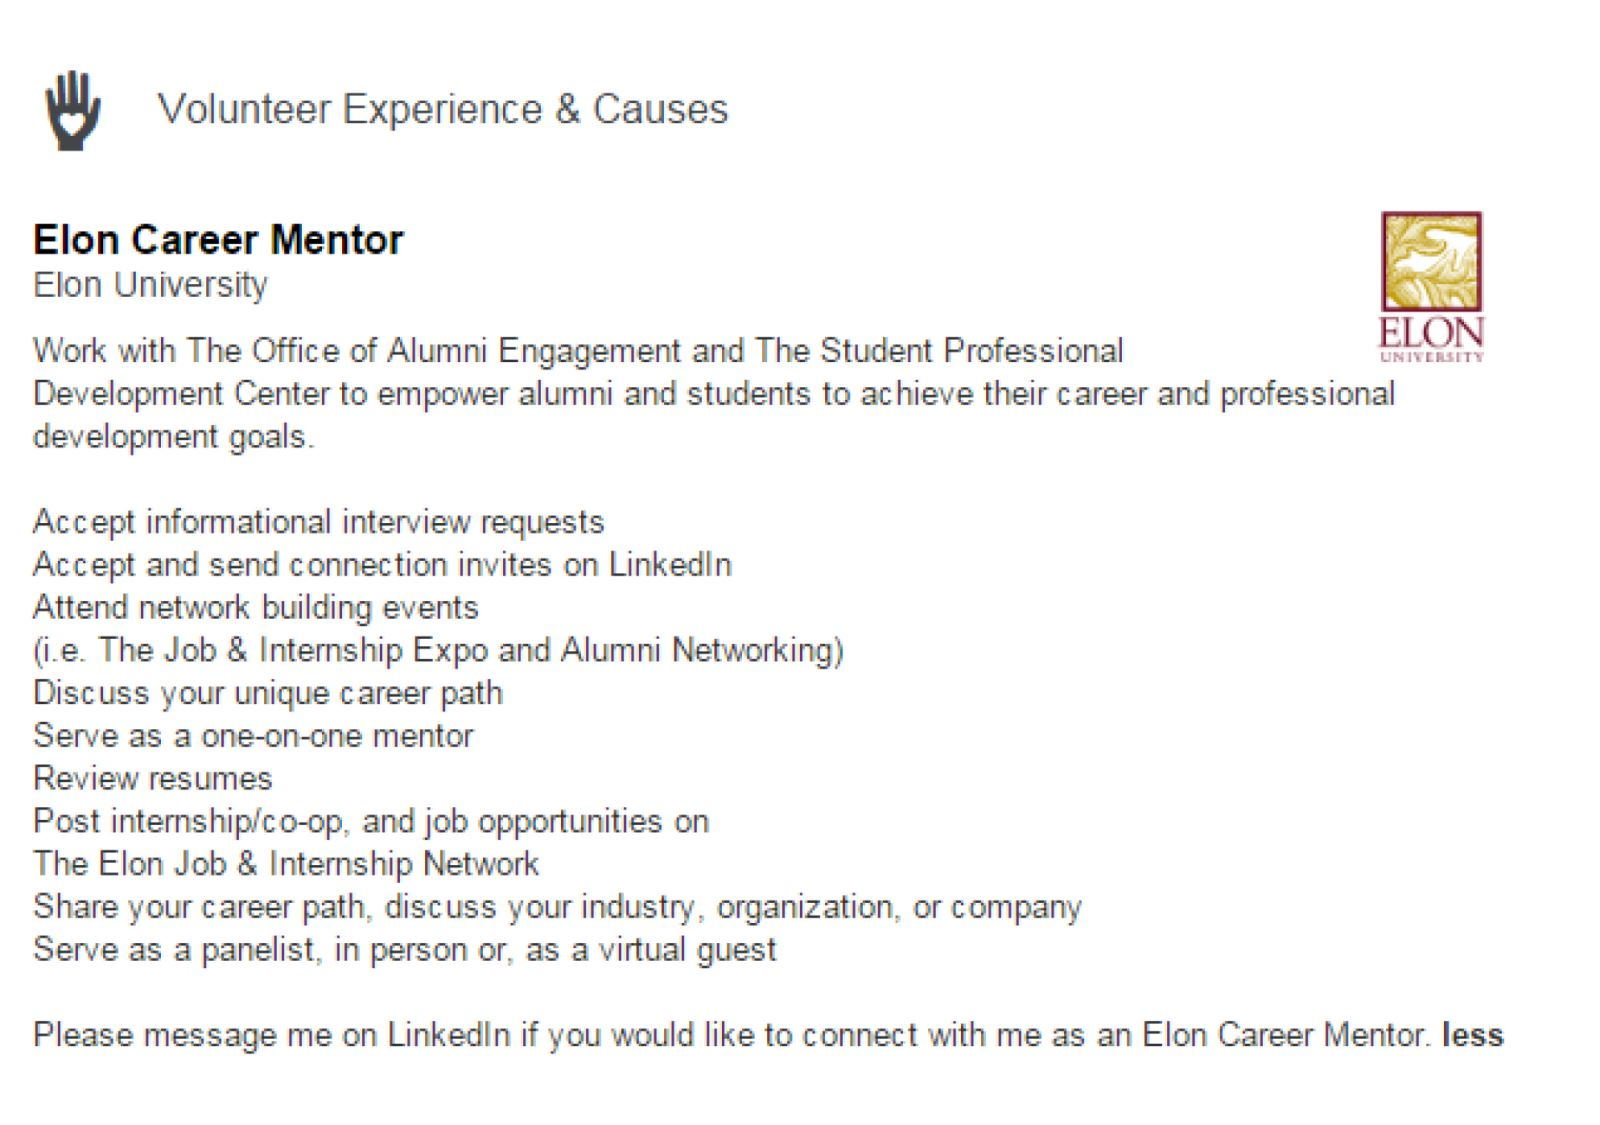 career mentors on linkedin prepare a few information interview questions conduct the interview submit a summary of interview questions and answers to careerservices edu